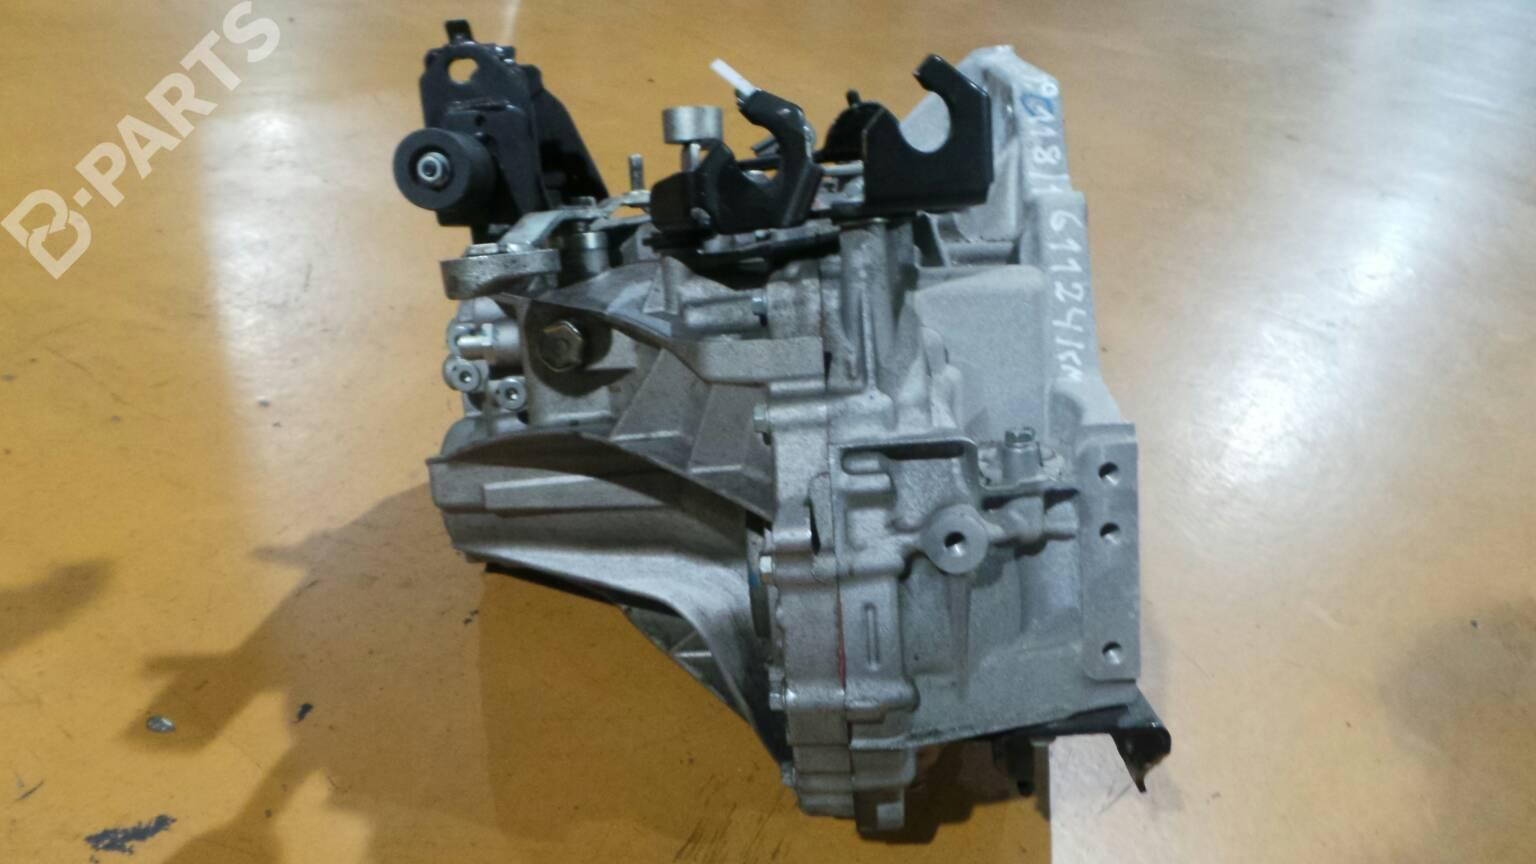 Manual Gearbox Toyota Yaris P9 14 D 4d Nlp90 28720 Alternator Wiring Diagram 12epp 308 209 A124